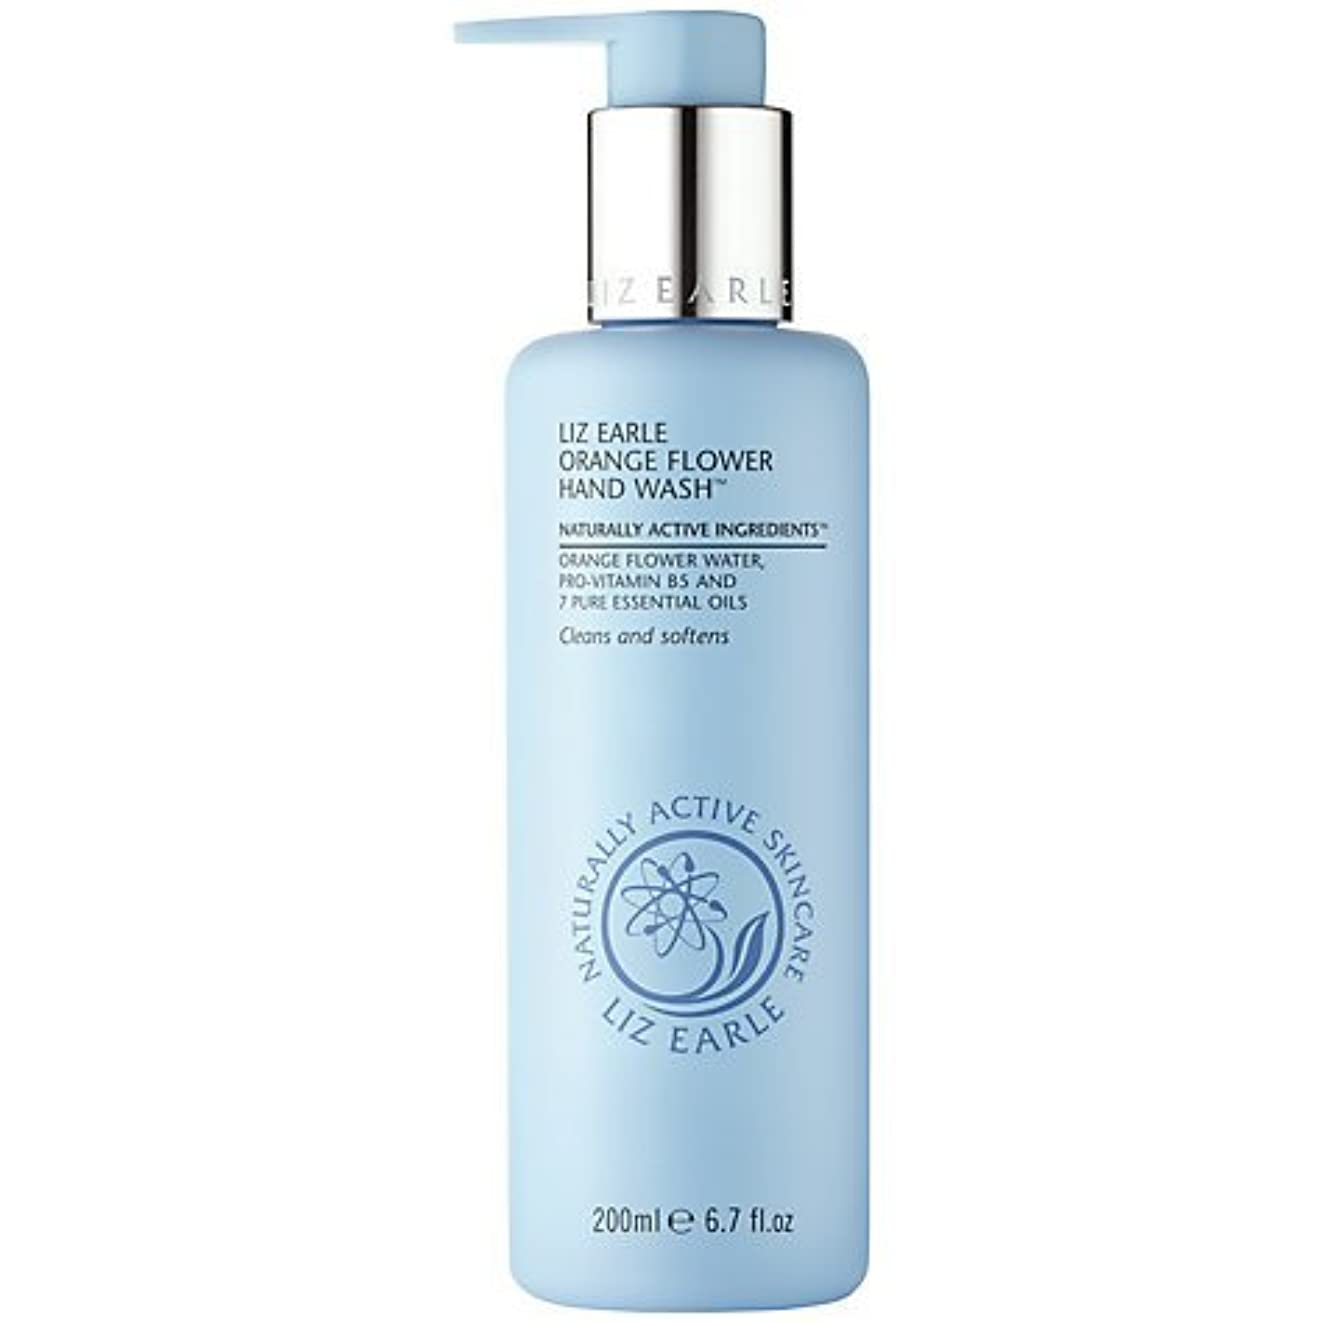 回る影響力のある複数Liz Earle Orange Flower Hand Wash 200ml by Liz Earle [並行輸入品]